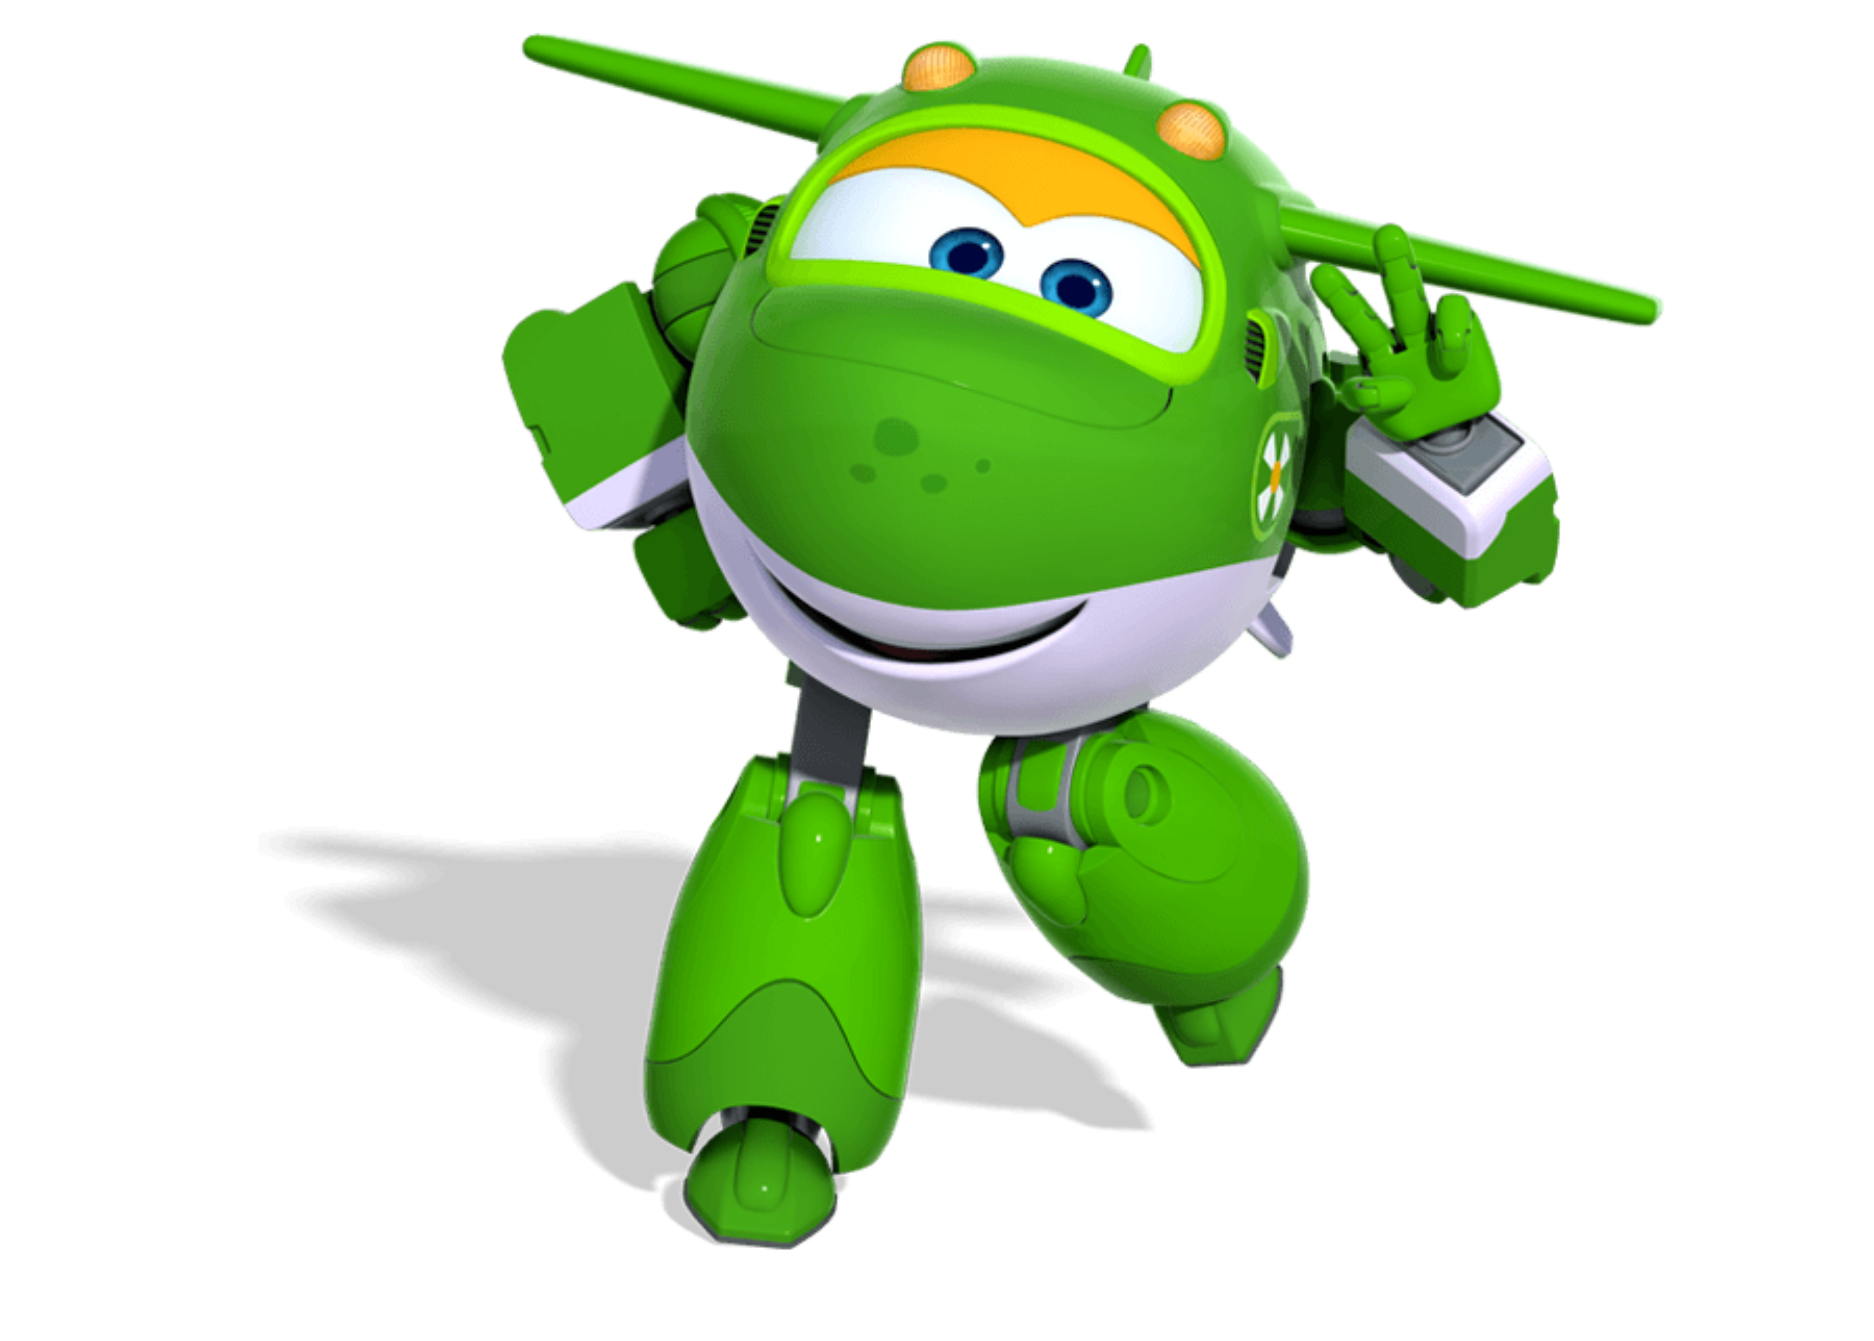 Super Wings - Mira Super Wings, super wings png Fotografías, super wings png bilder, super wings png picture